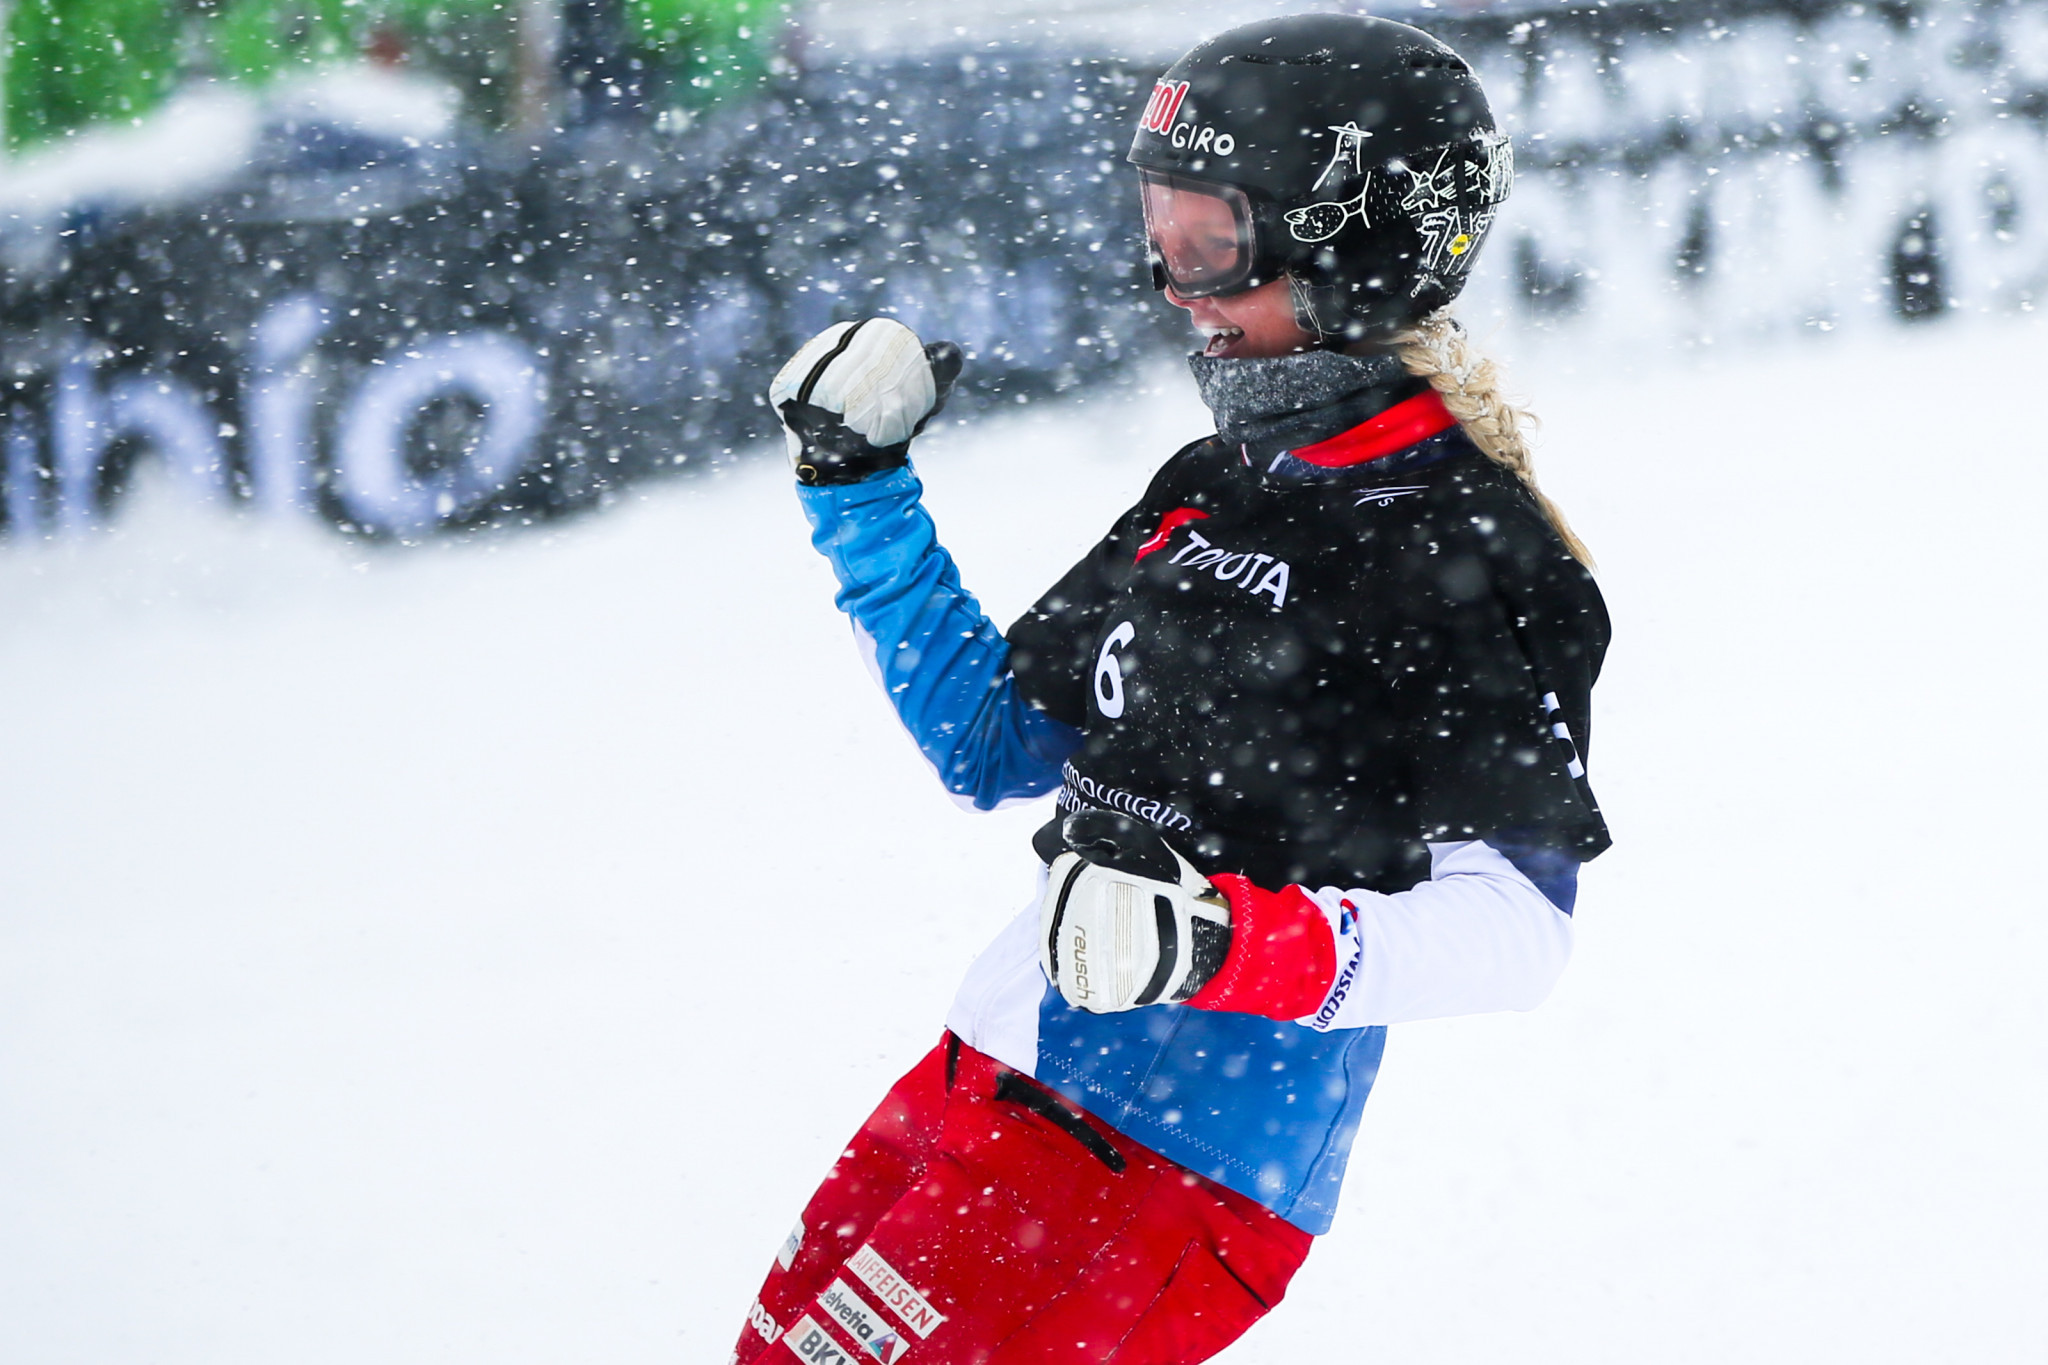 Zogg scrambles to FIS parallel slalom crystal globe with 13th-place finish in Winterberg